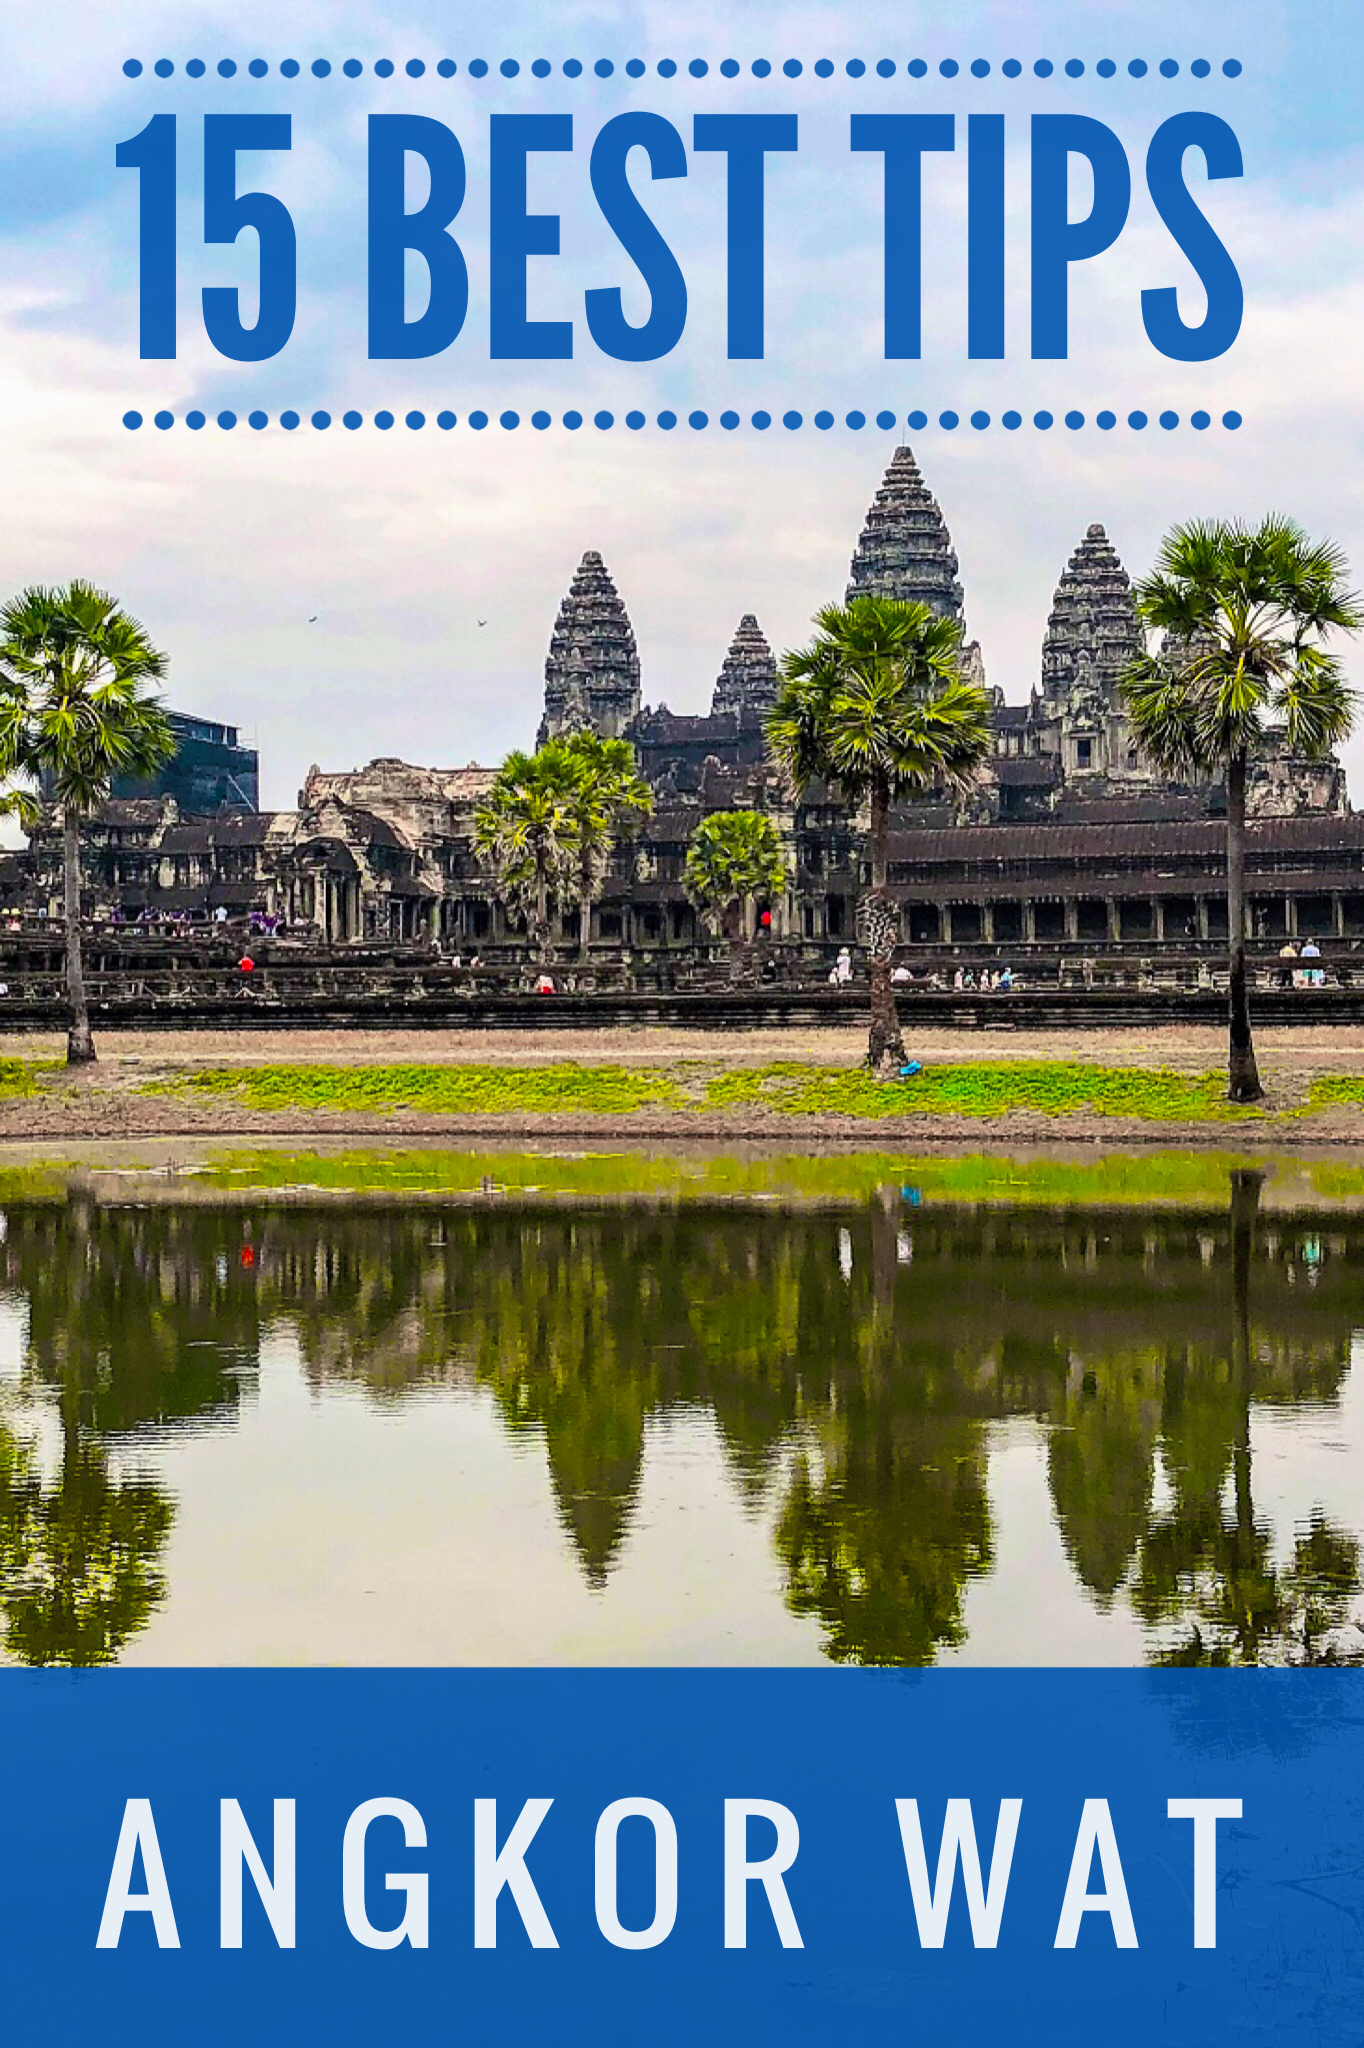 Best tips for Angkor Wat Cambodia. Tried and tested sanity saving tips for this hugely popular UNESCO World Heritage Site. #Cambodia #AngkorWat #UNESCO